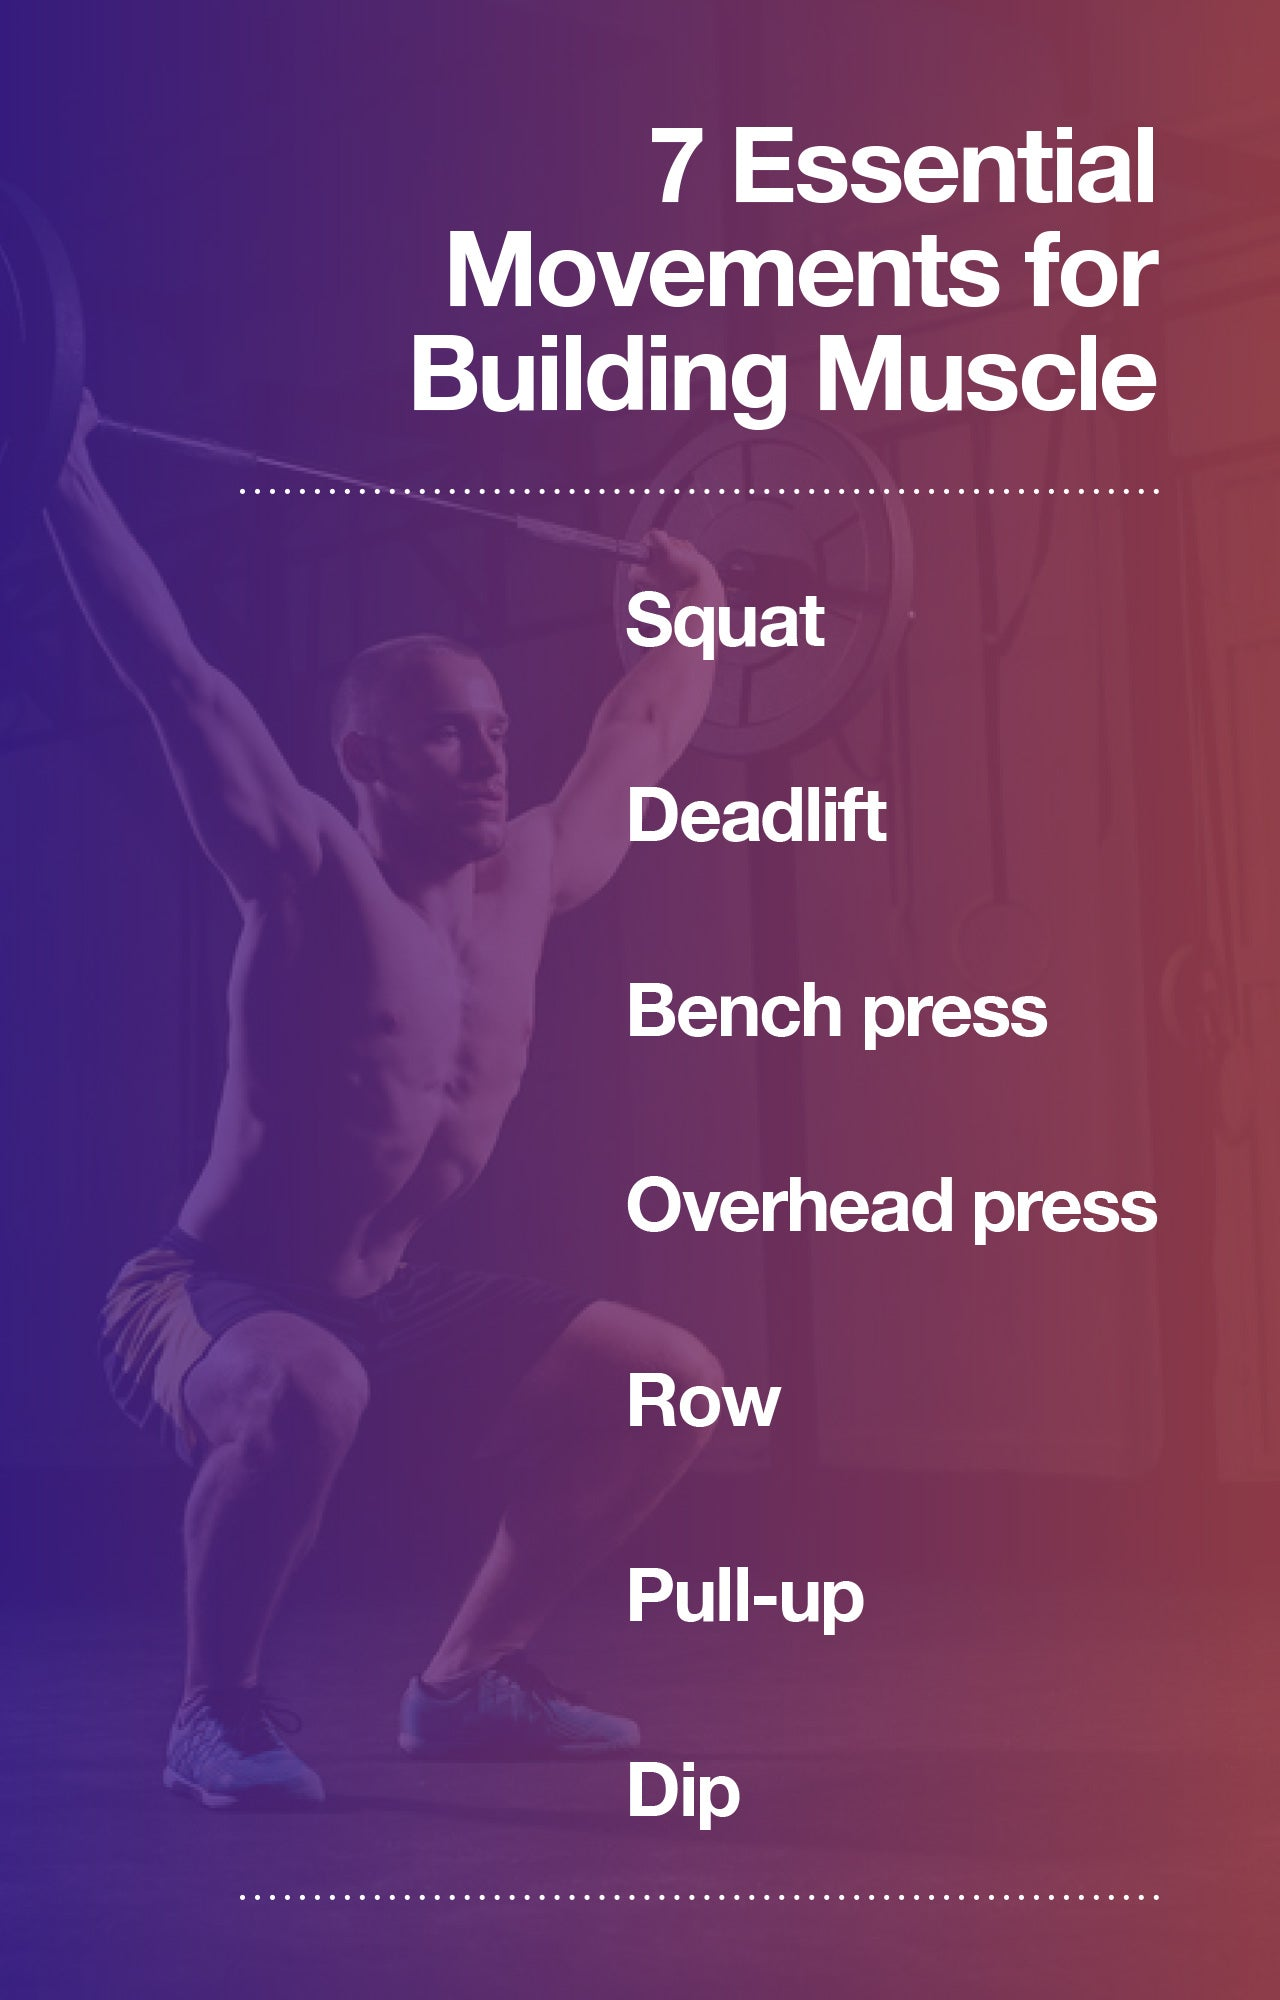 7 movements for building muscle